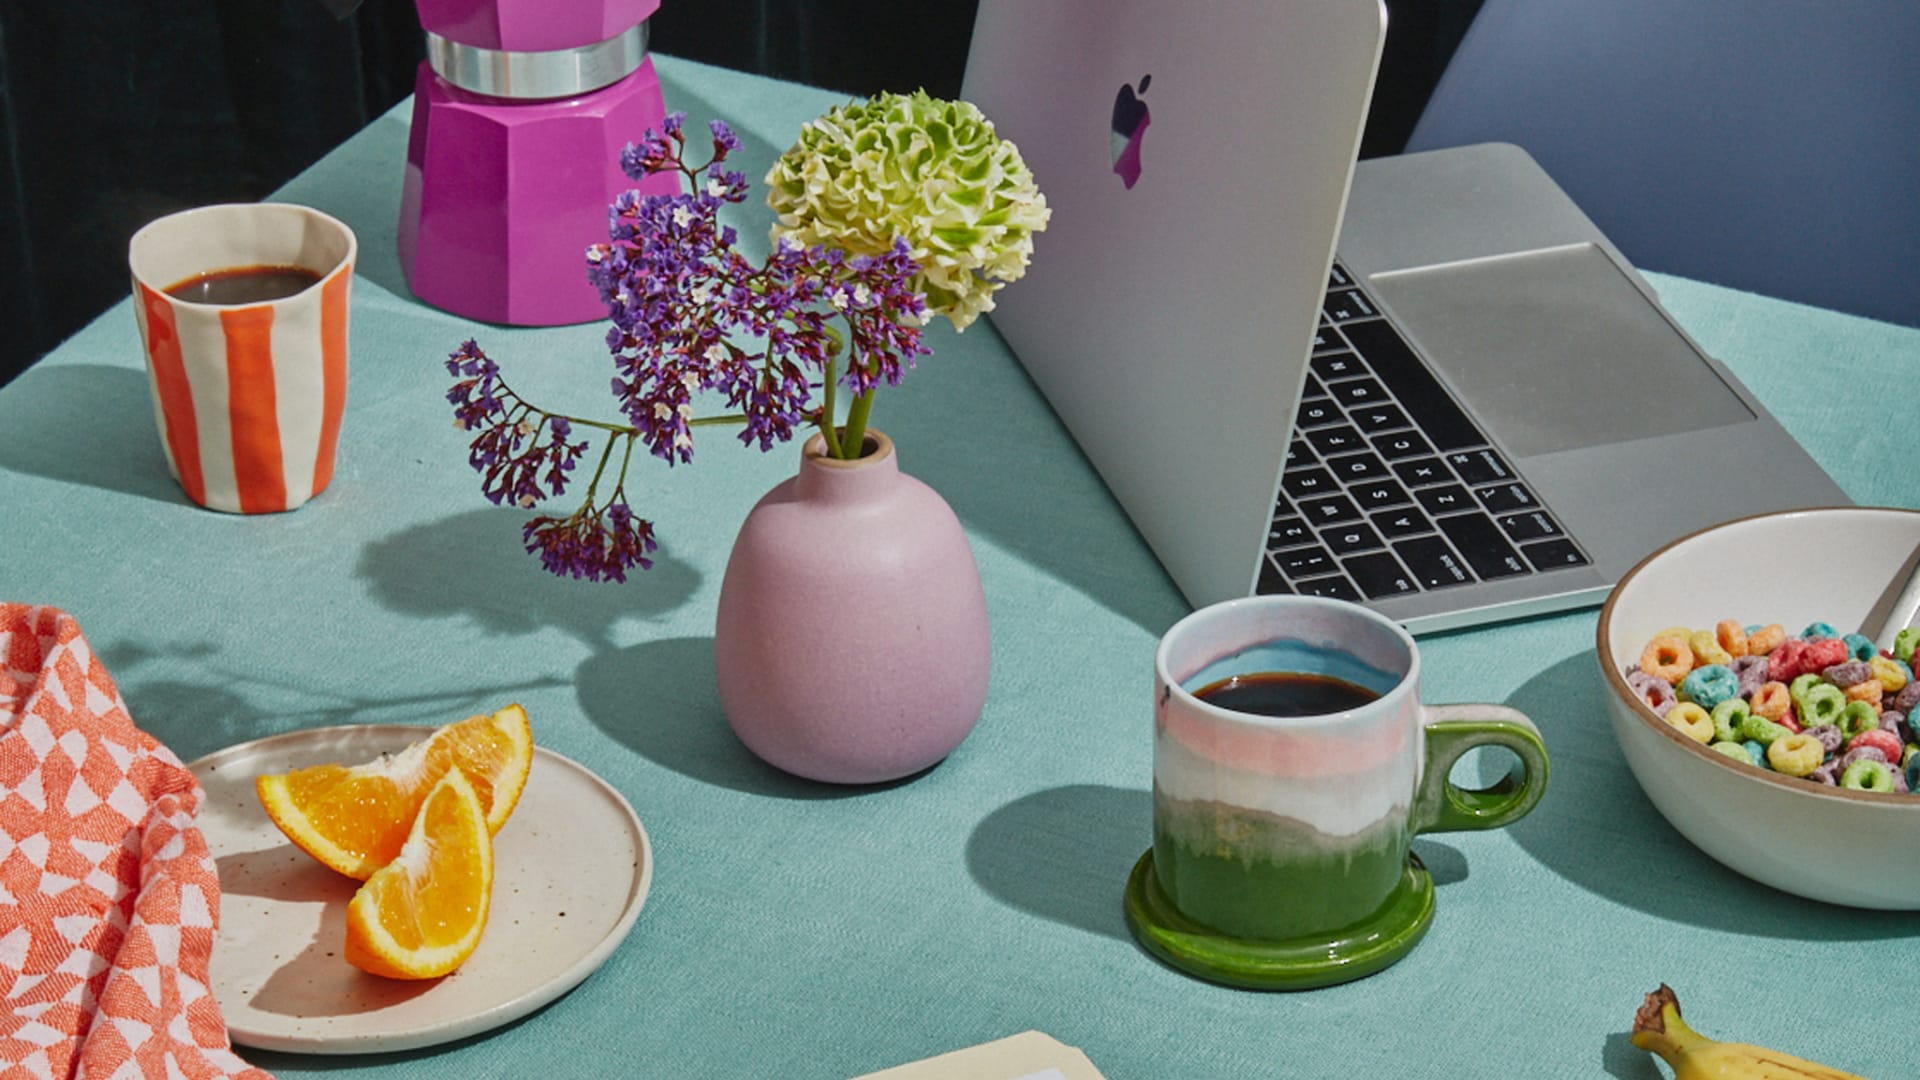 5 Must-Have Gifts for the Home Office